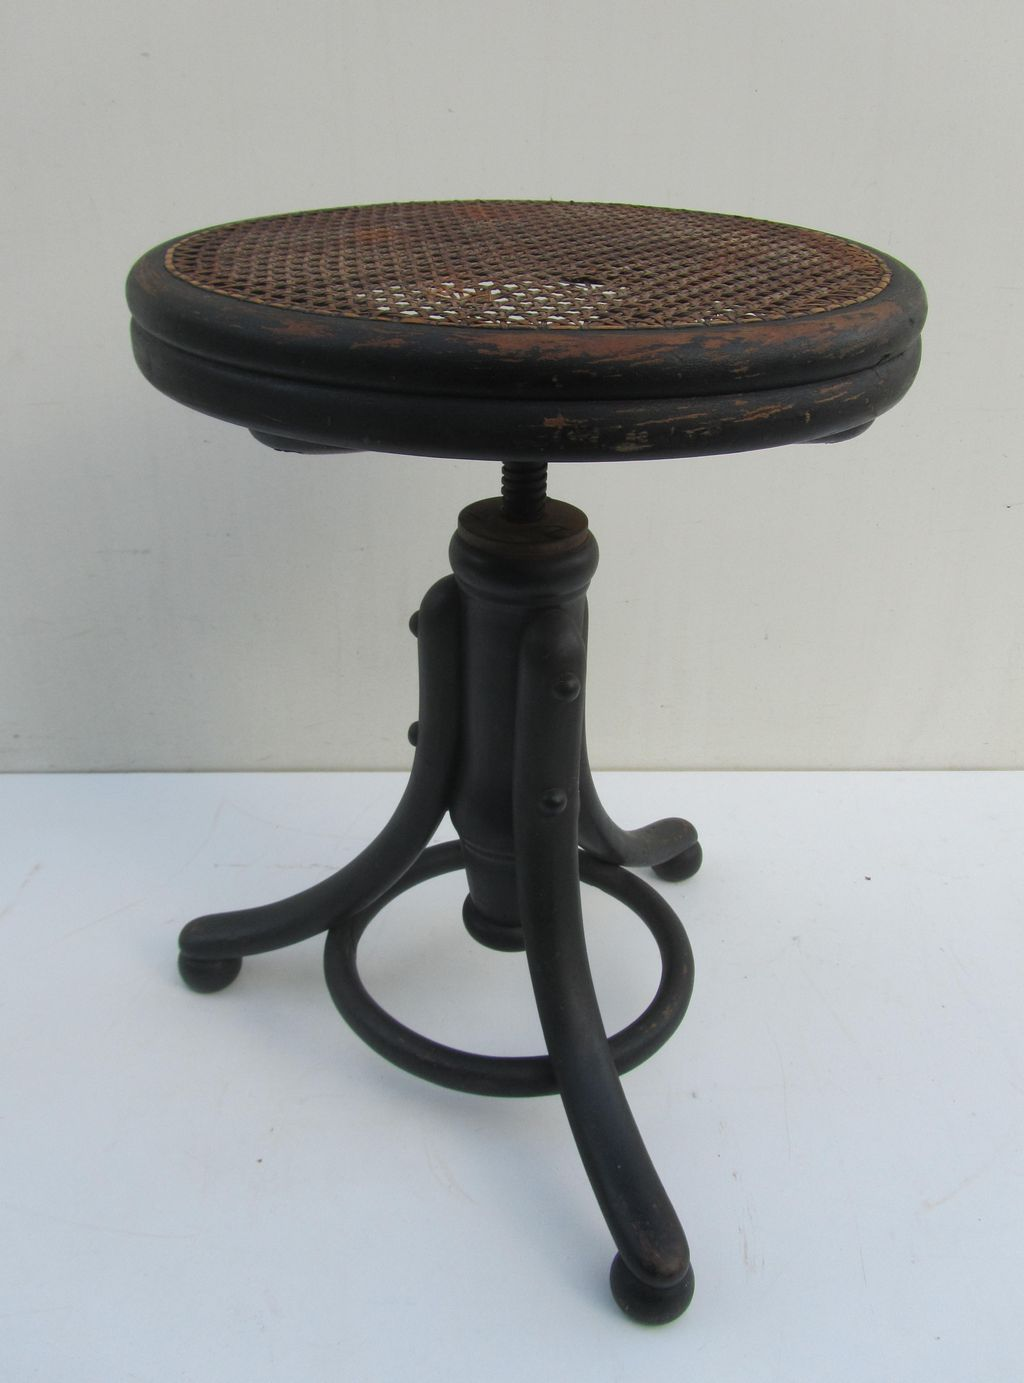 Thonet Piano Stool Tabouret Adjustable